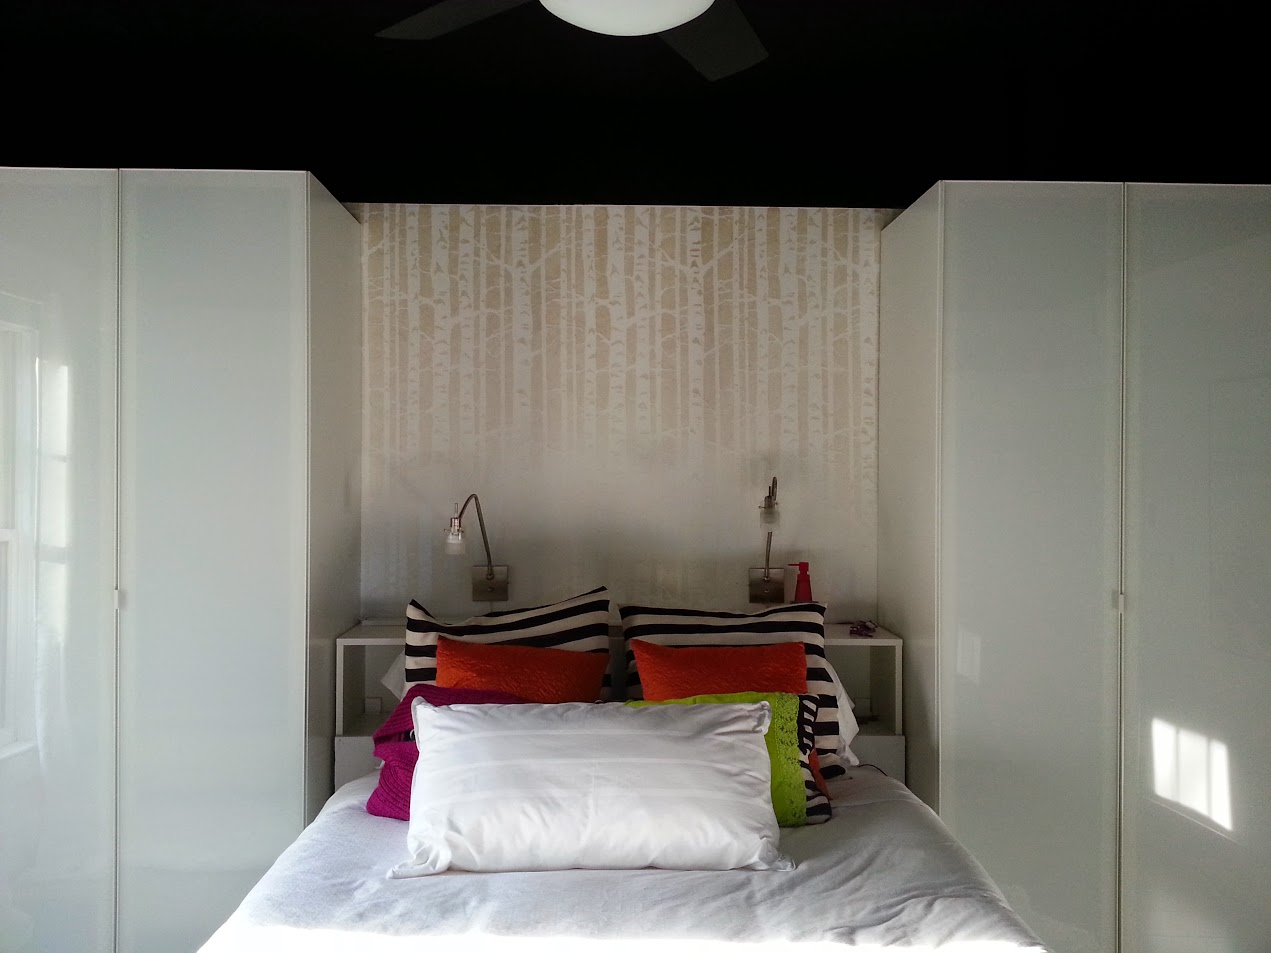 Bed, stenciled headboard wall, wardrobes